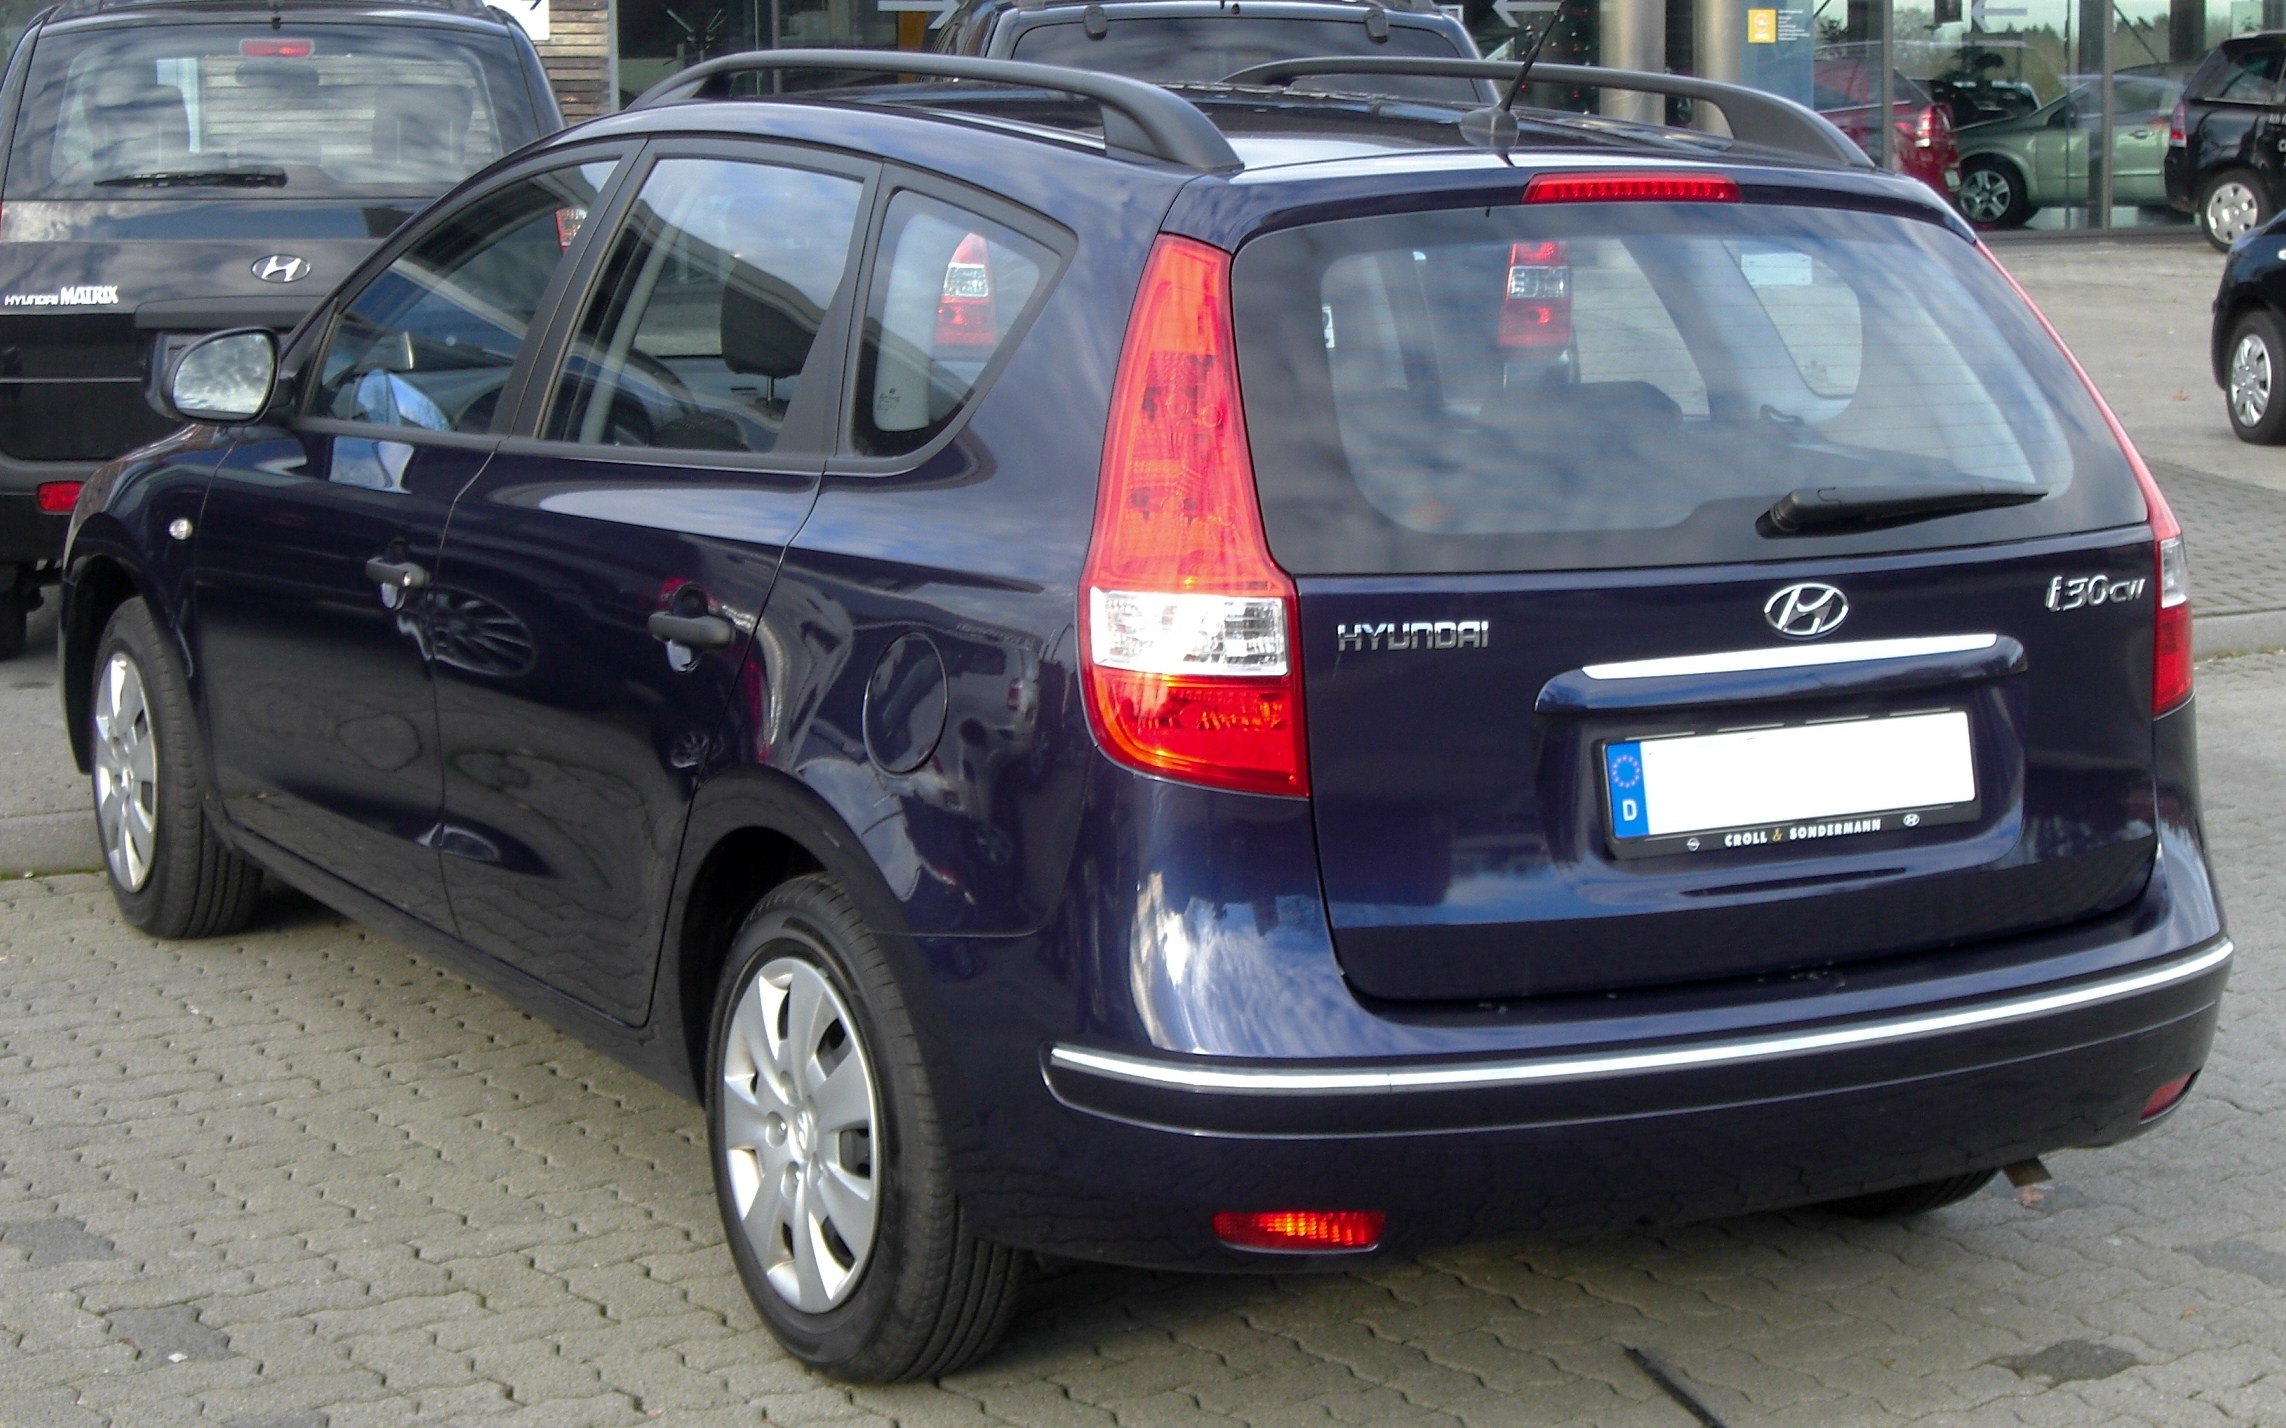 File Hyundai I30cw Seit 2008 Rear Mj Jpg